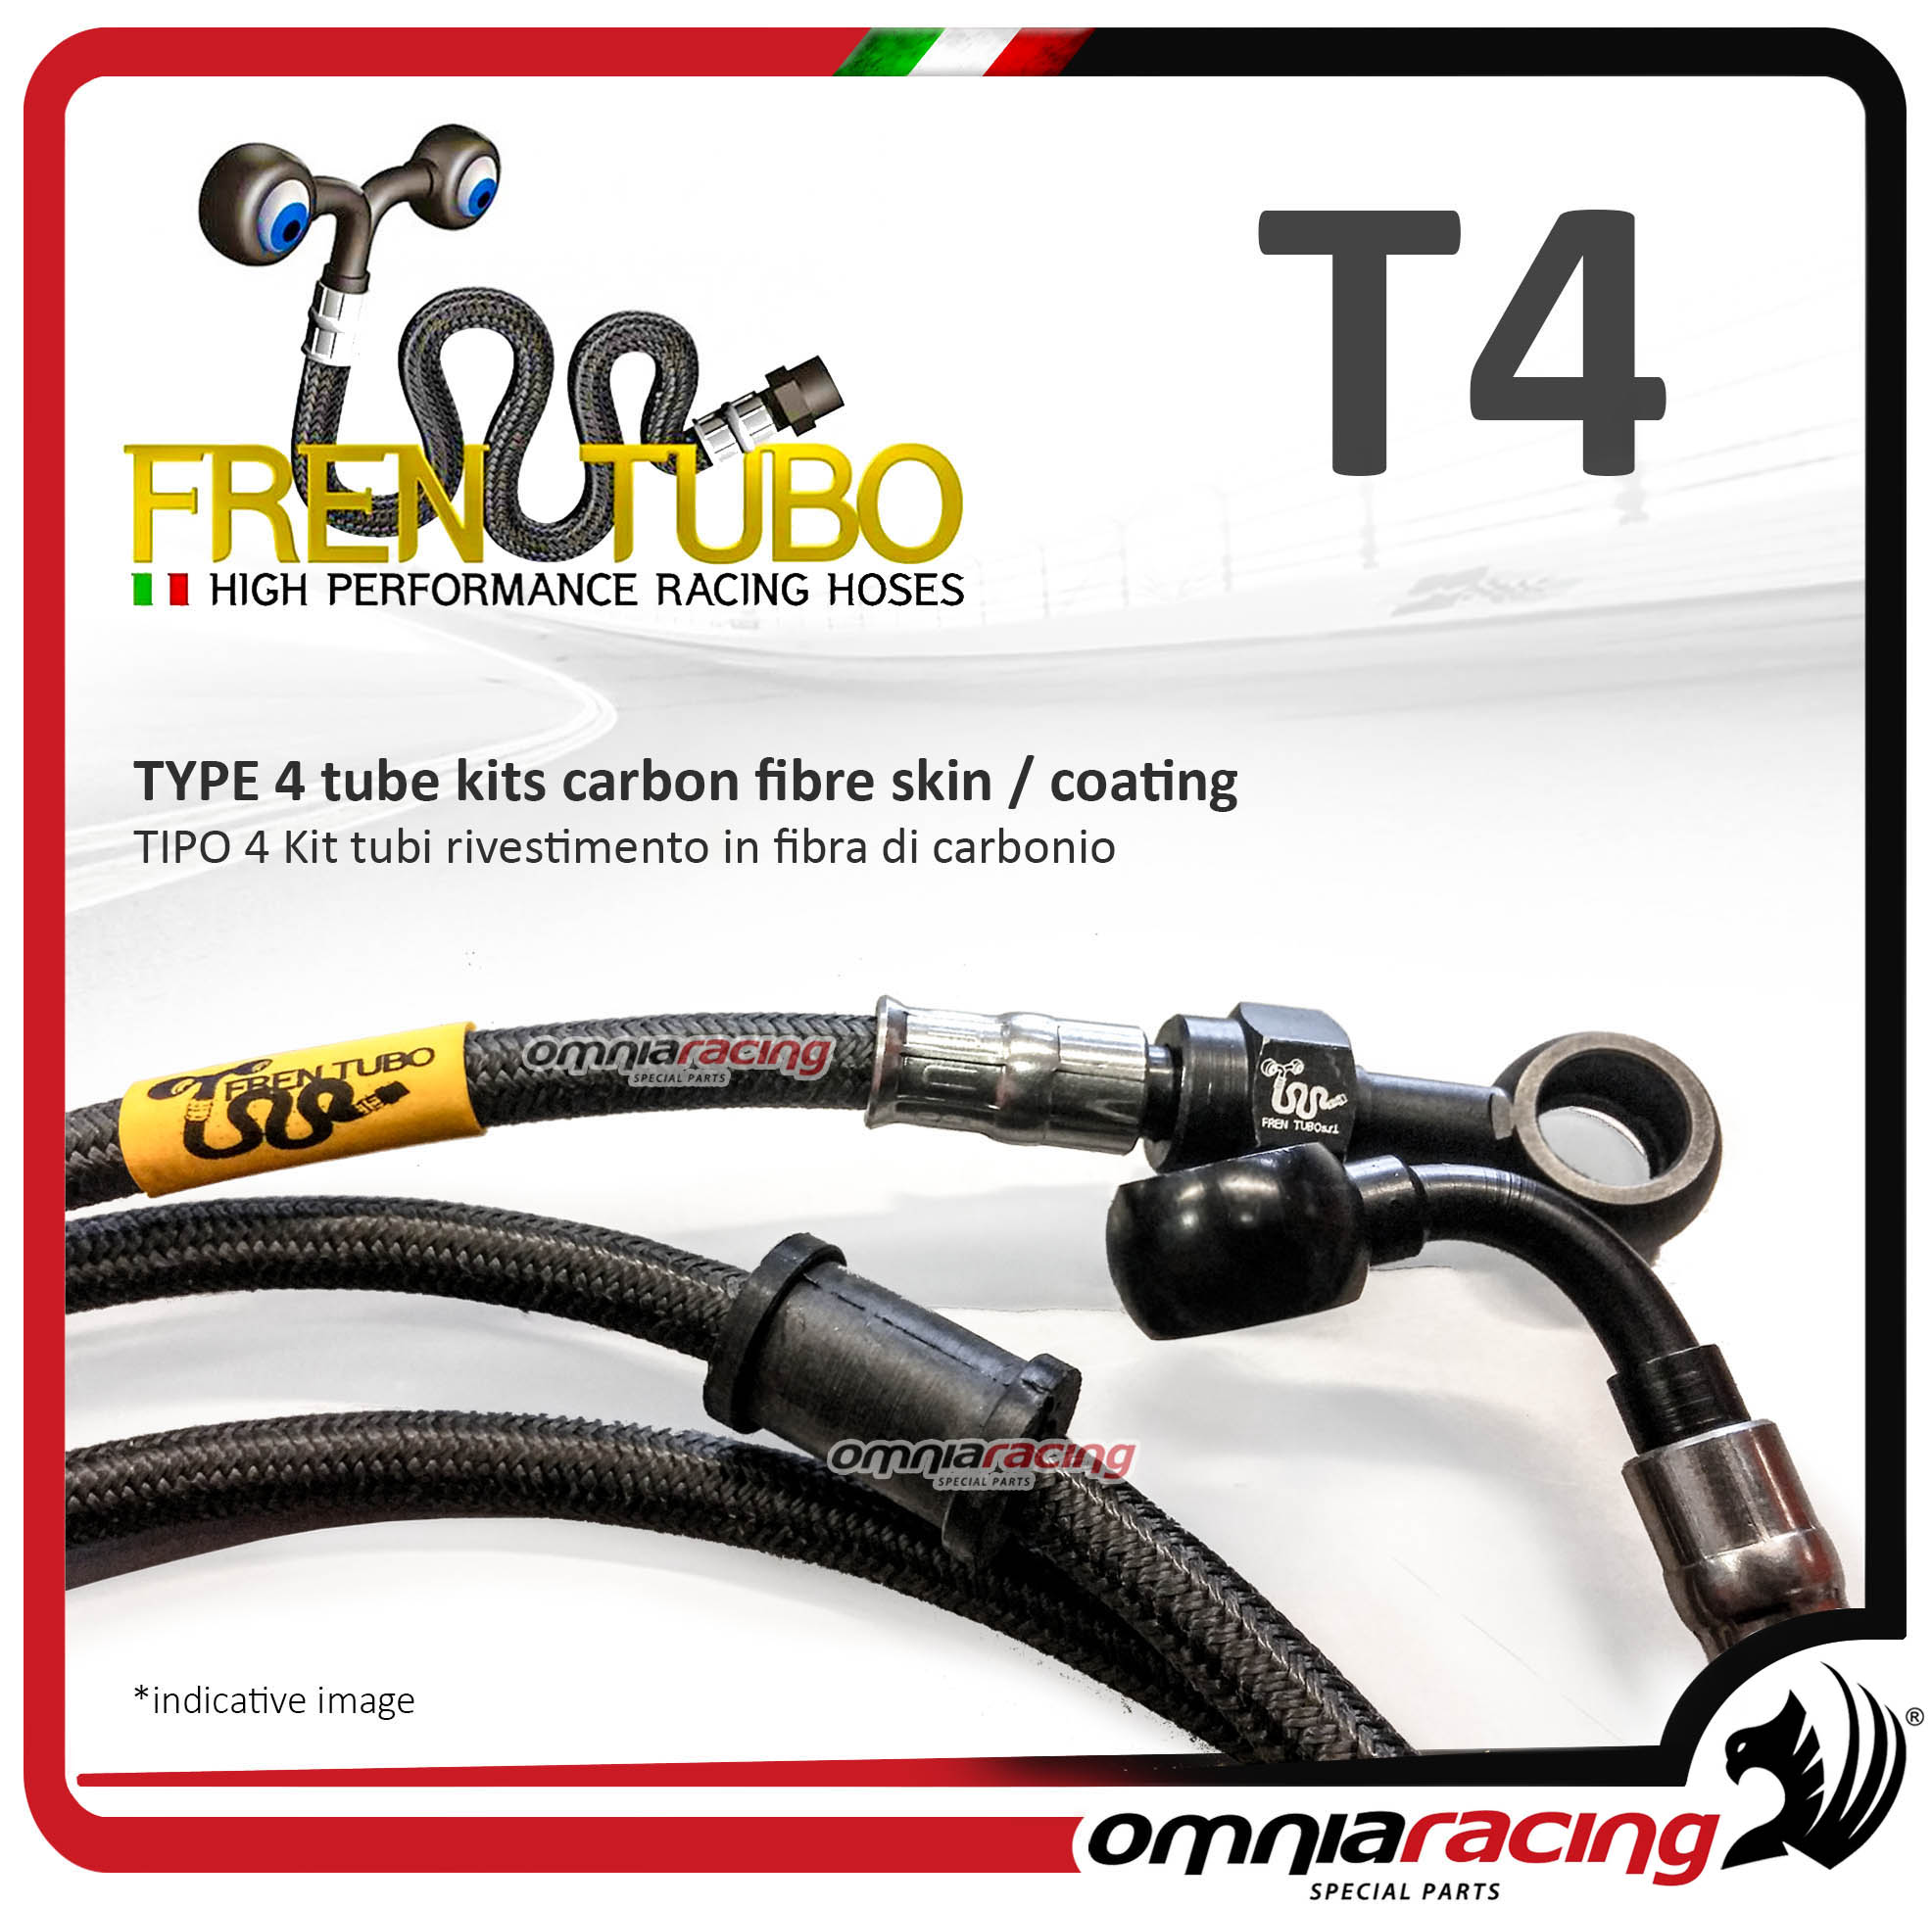 Frentubo kit tubi freno in treccia aeronautica tipo 4 in carbonio per KTM 690 DUKE BLACK ABS 2015